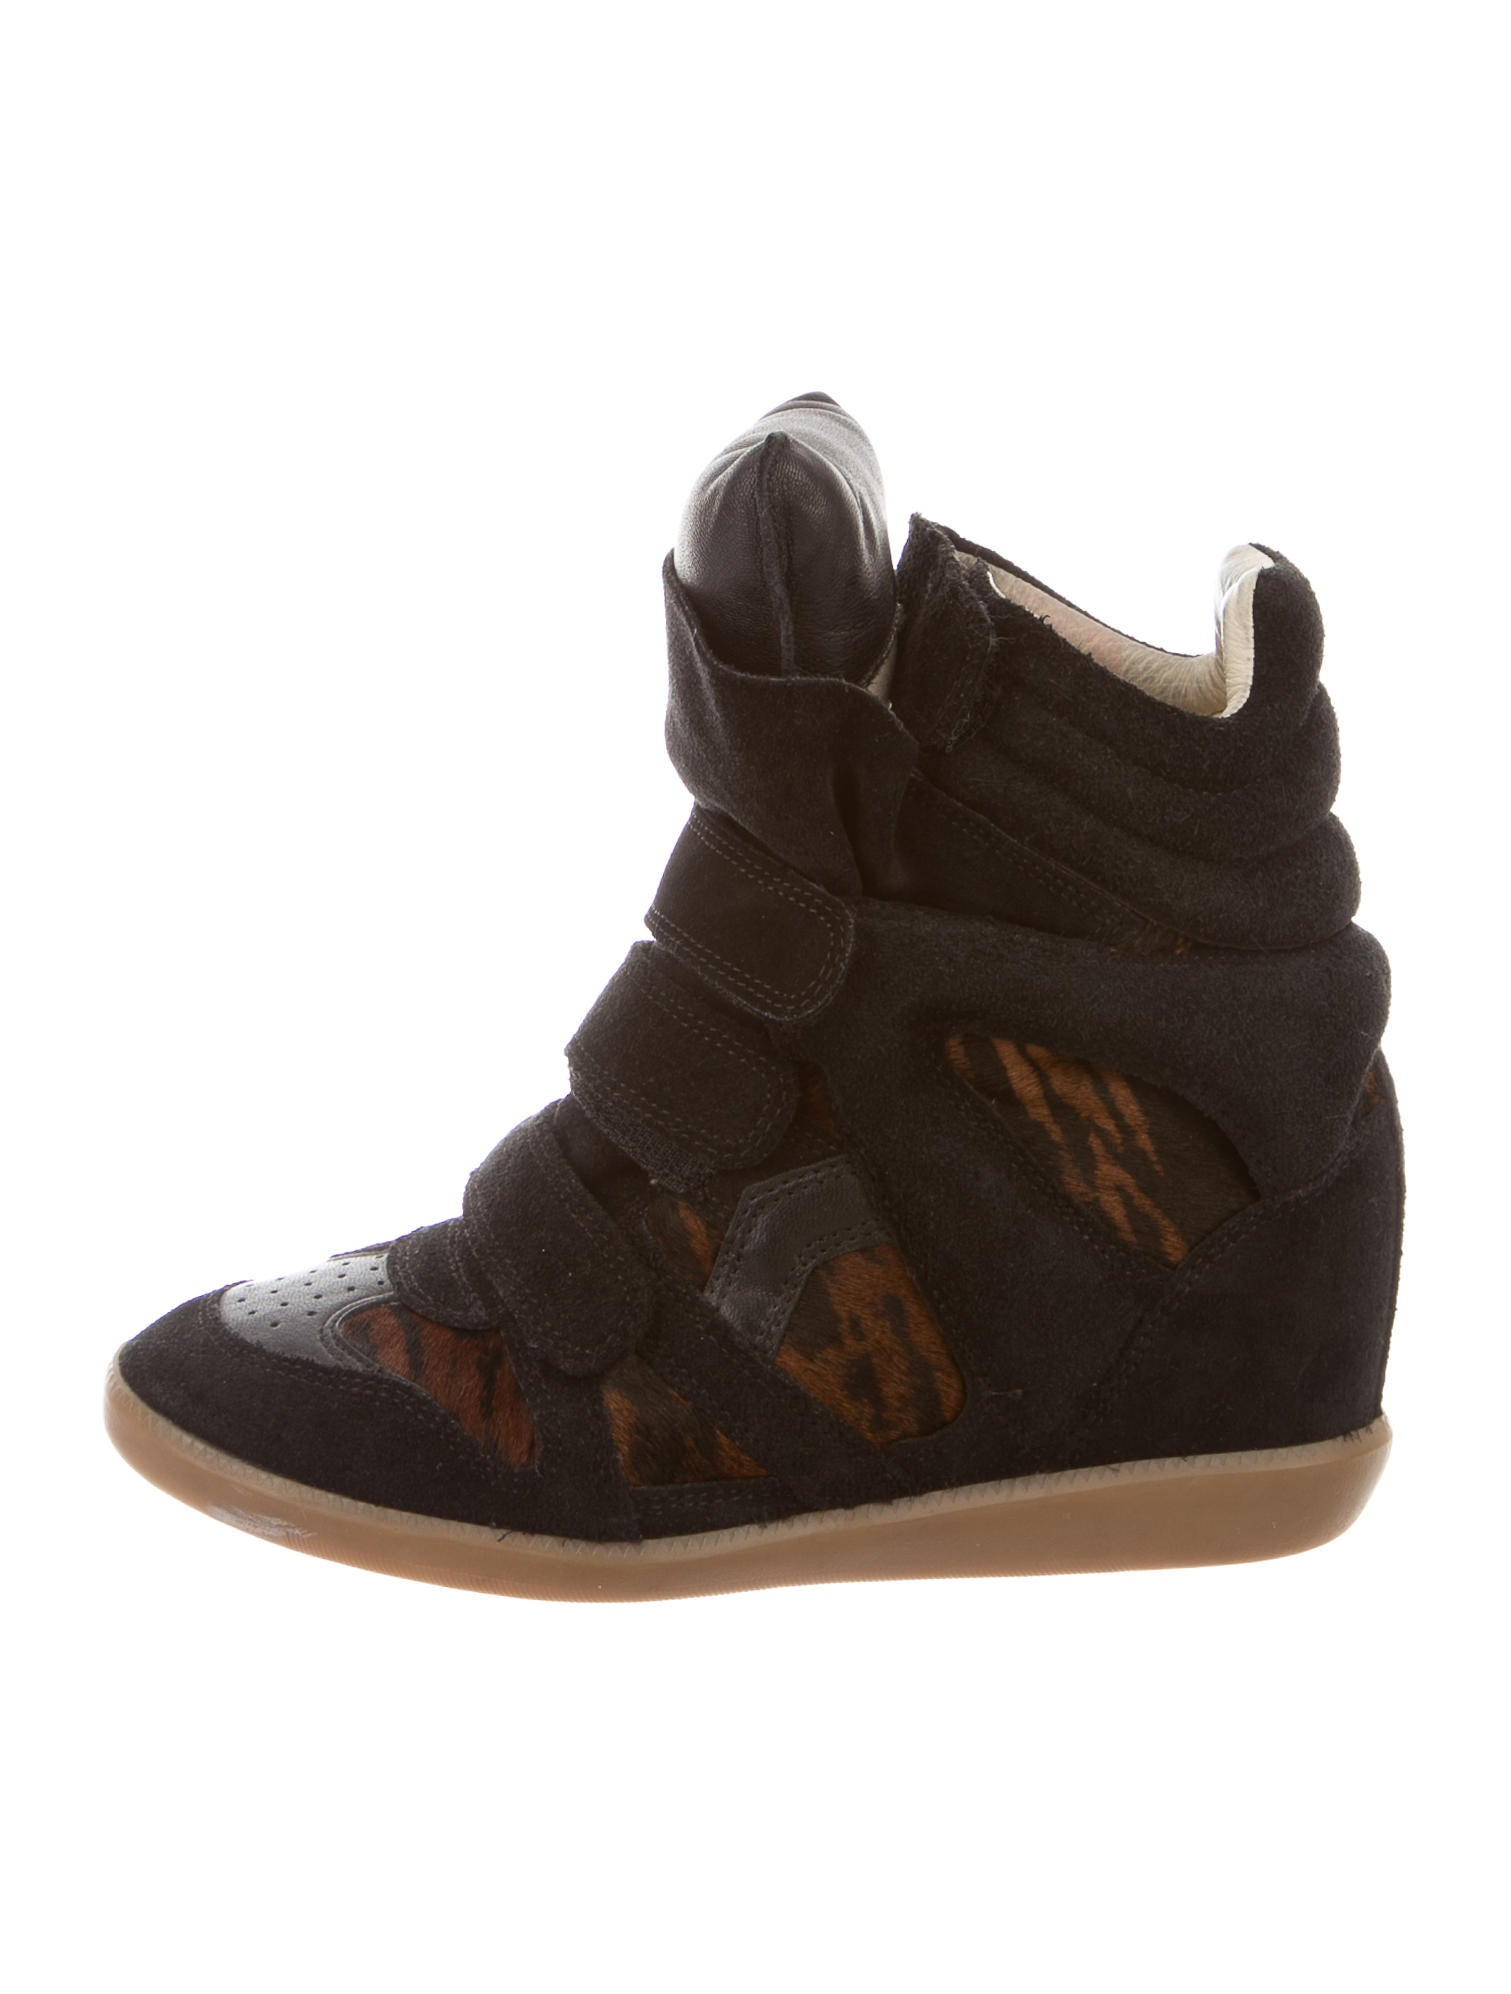 isabel marant beckett wedge sneakers shoes isa35282 the realreal. Black Bedroom Furniture Sets. Home Design Ideas